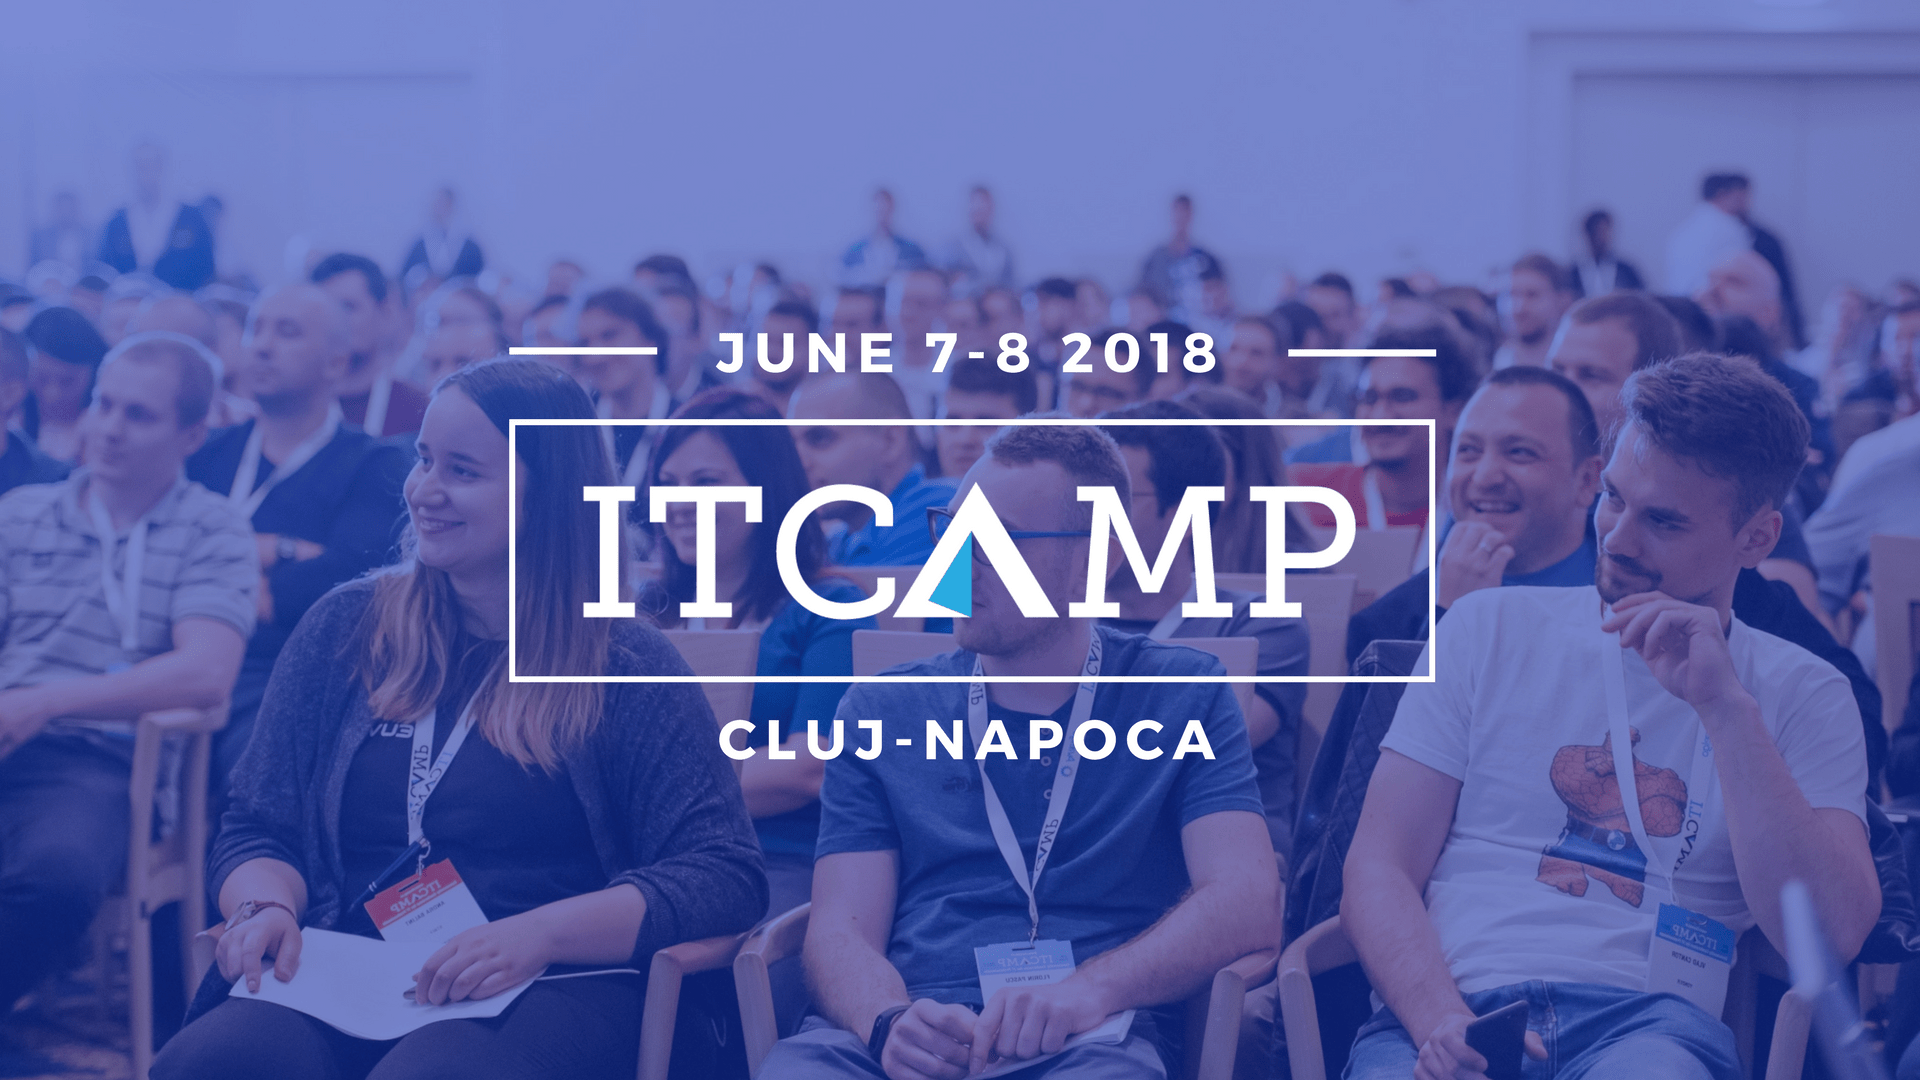 IT Camp 2018 Overview